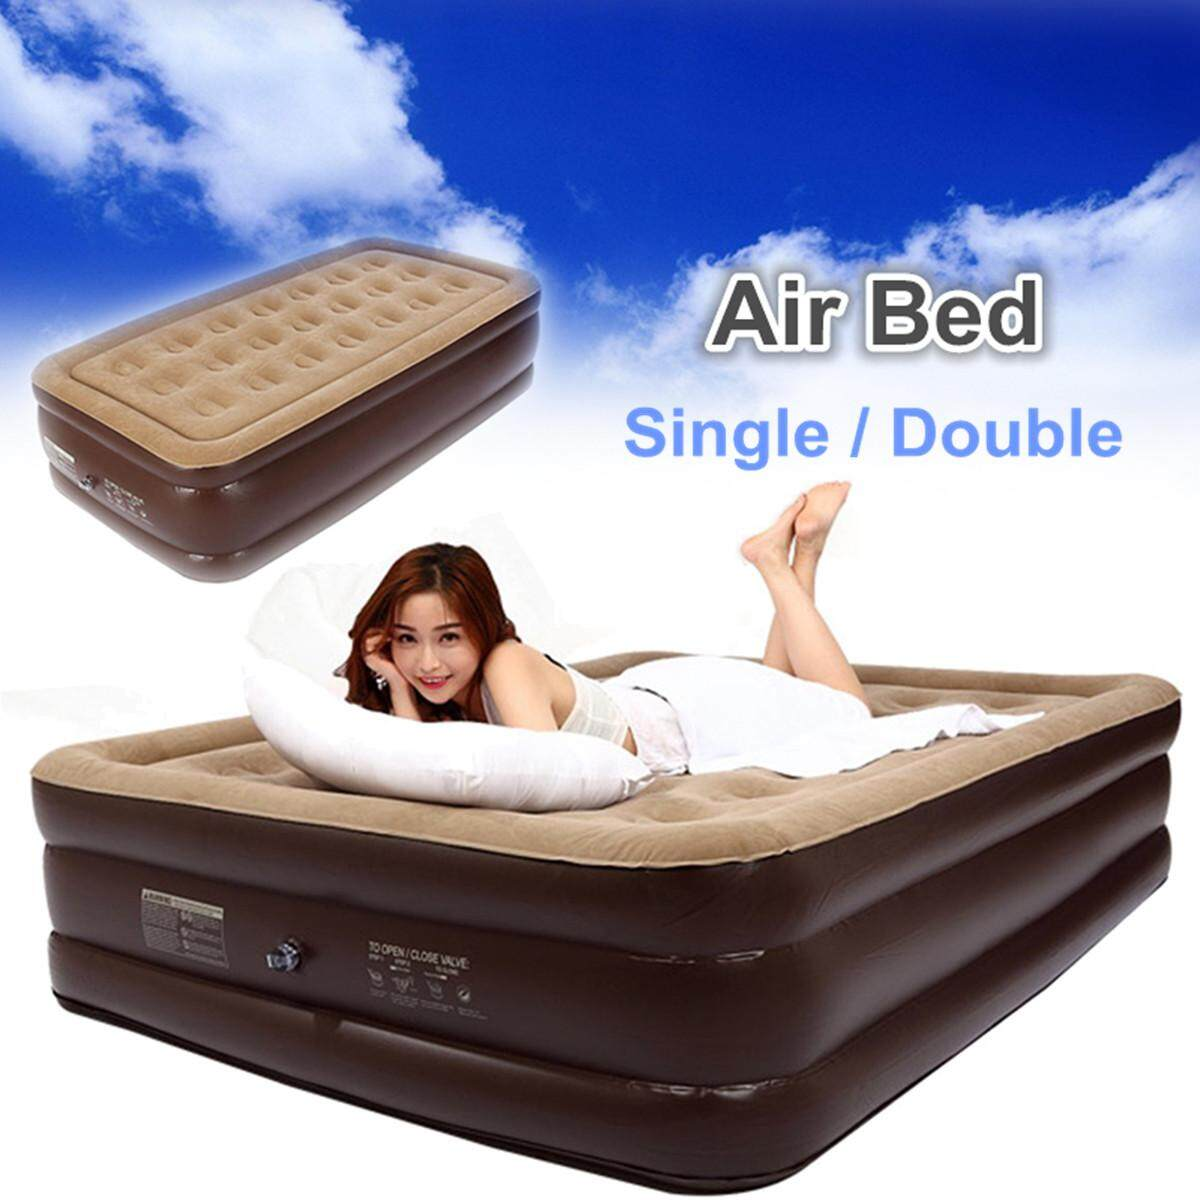 Bestway Air Bed Inflatable Couch Mattress Sleeping Mats Home Single Double Queen  Single By Glimmer.